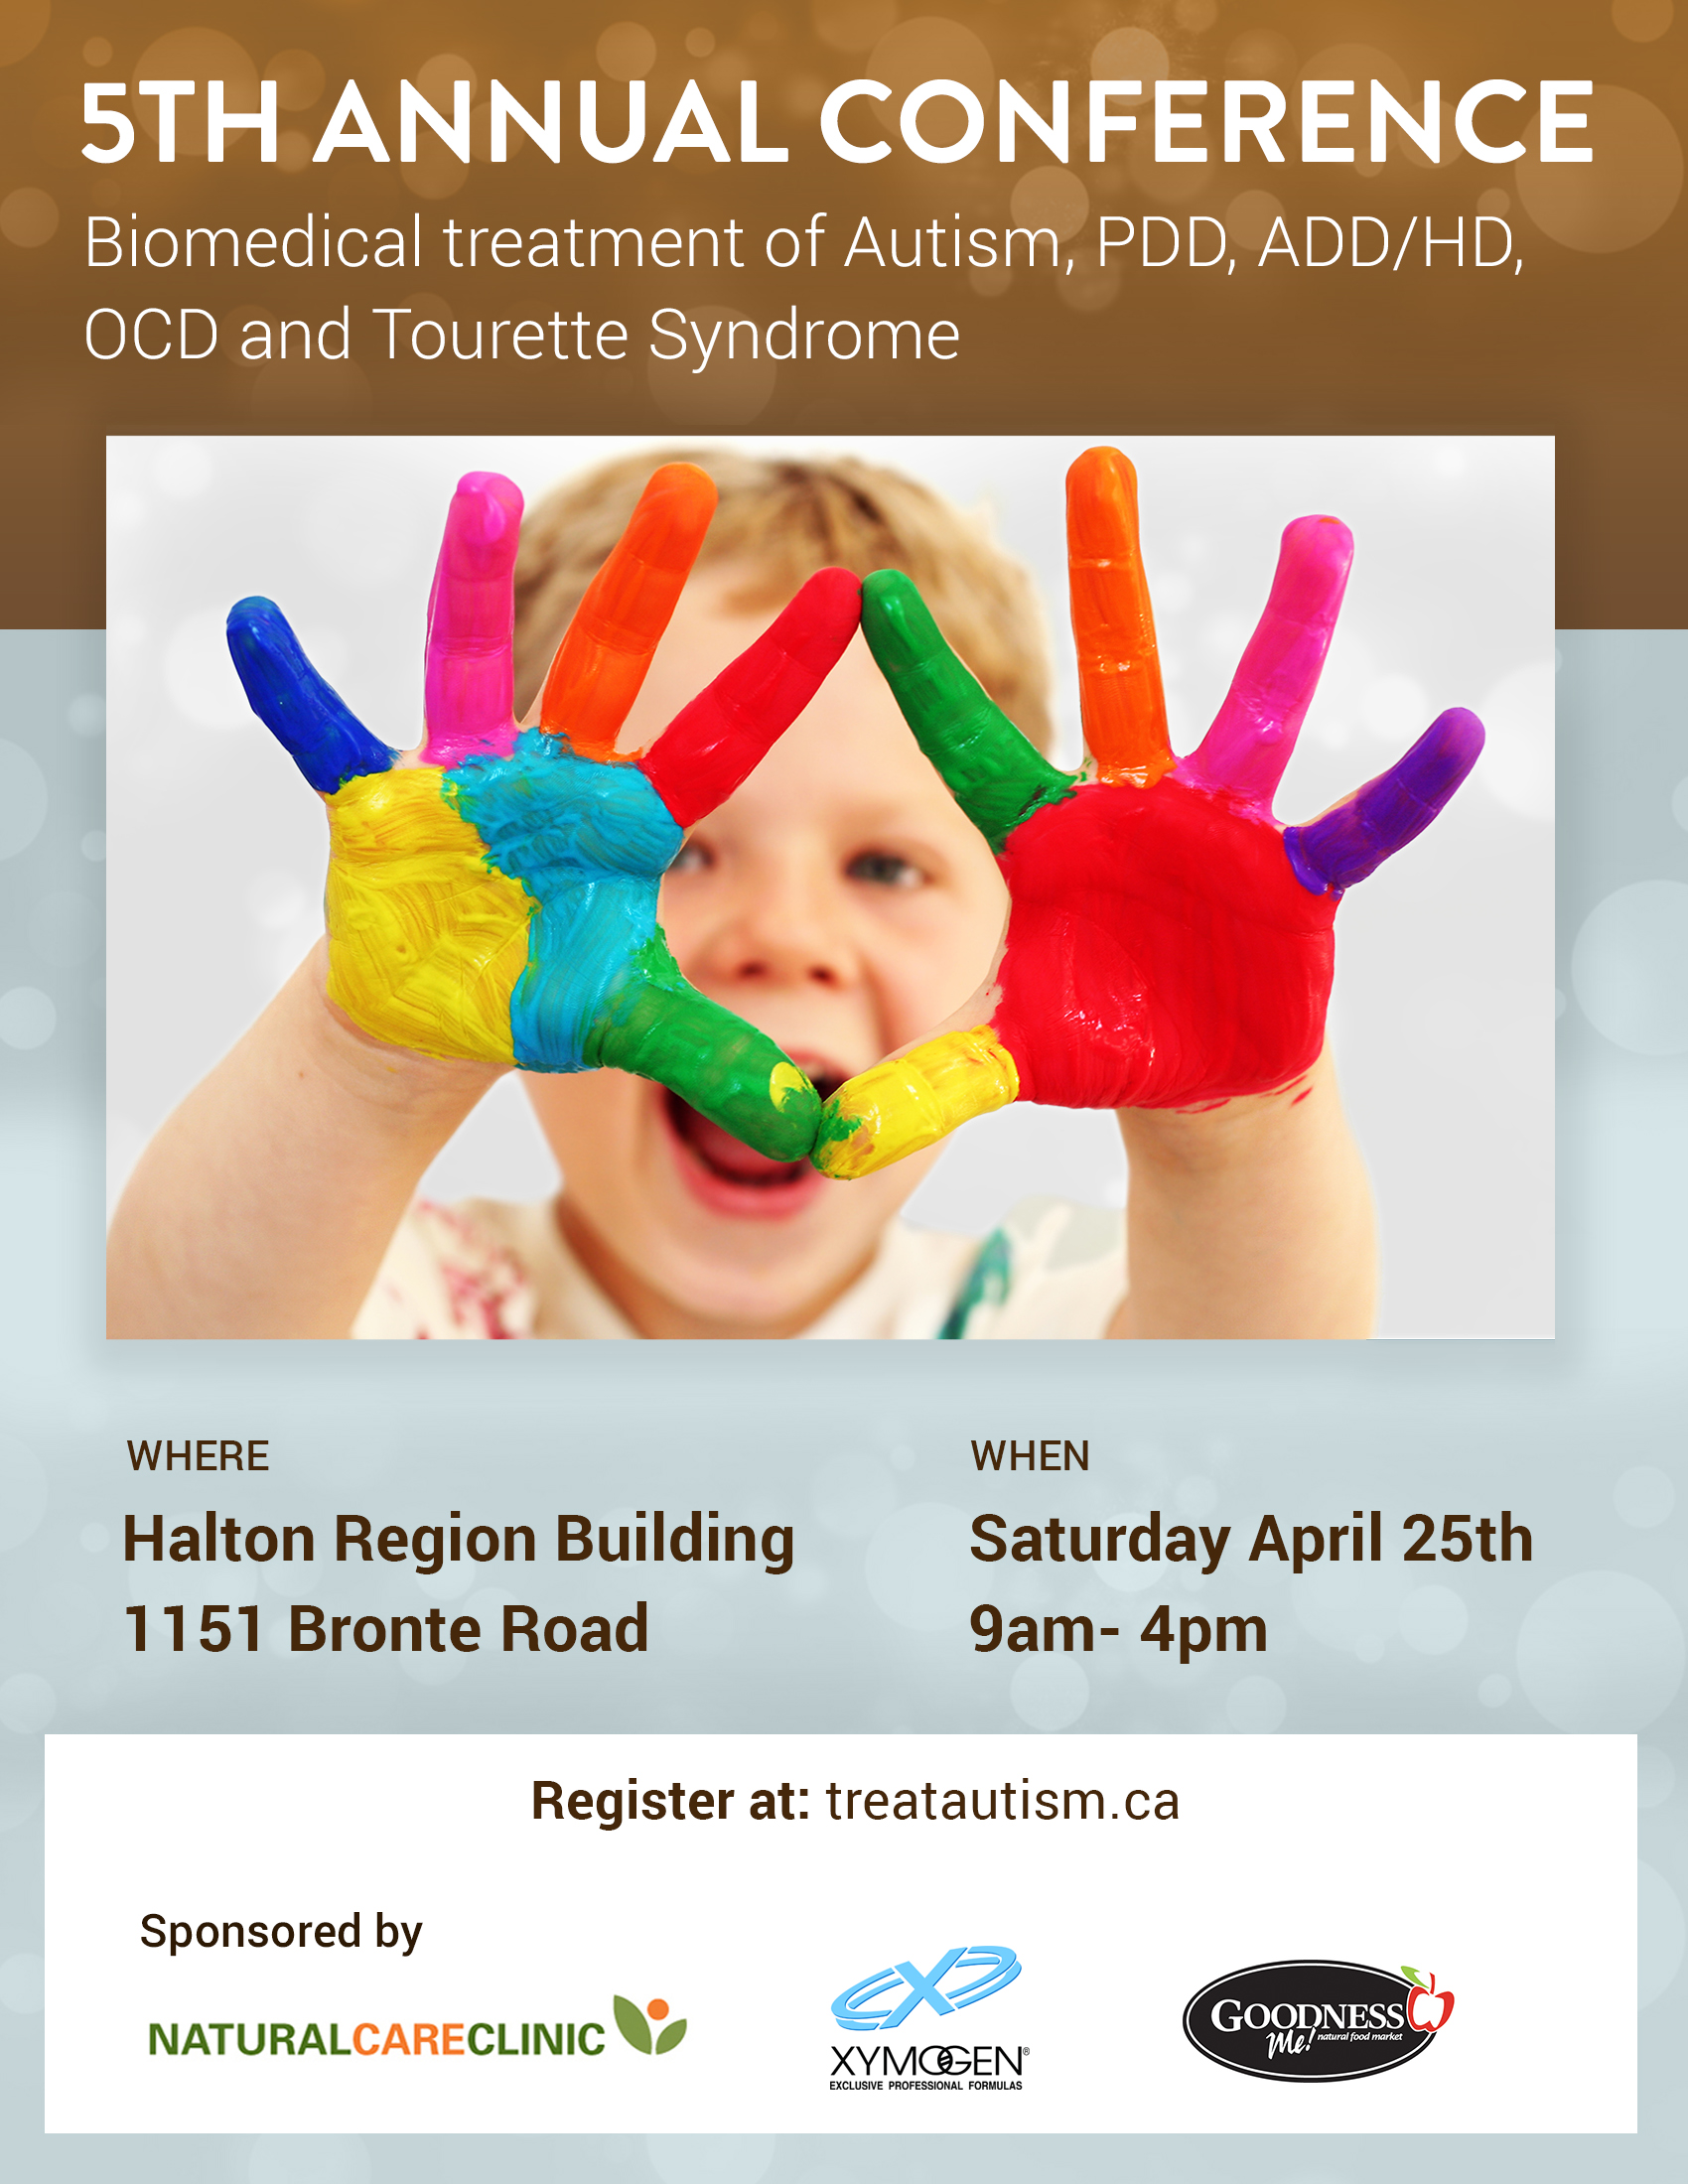 5th Annual Conference - Biomedical Treatment of Autism, PDD, ADD/HD, OCD and Tourette Syndrome